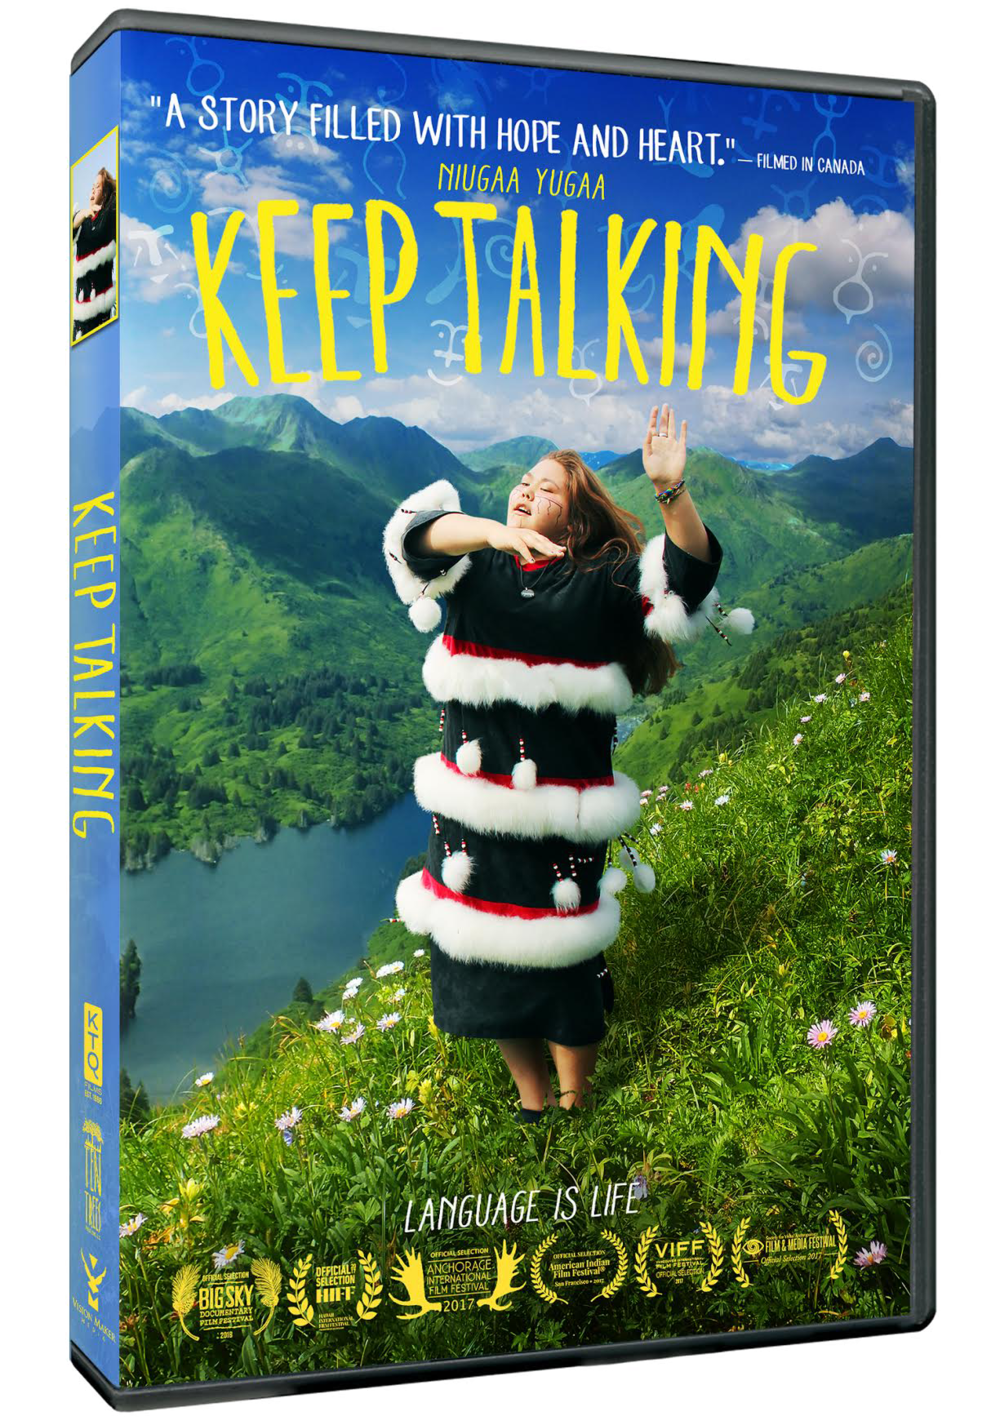 KEEP TALKING on DVD! - $24.95Includes: - Two versions of the film (79 minute and 57 minute)- English and Spanish subtitles- 18 never-before-seen extra scenes, including A New Word for 'Tweet', Dancing is for Men, and The Eldest Elder- Downloadable educational discussion guide